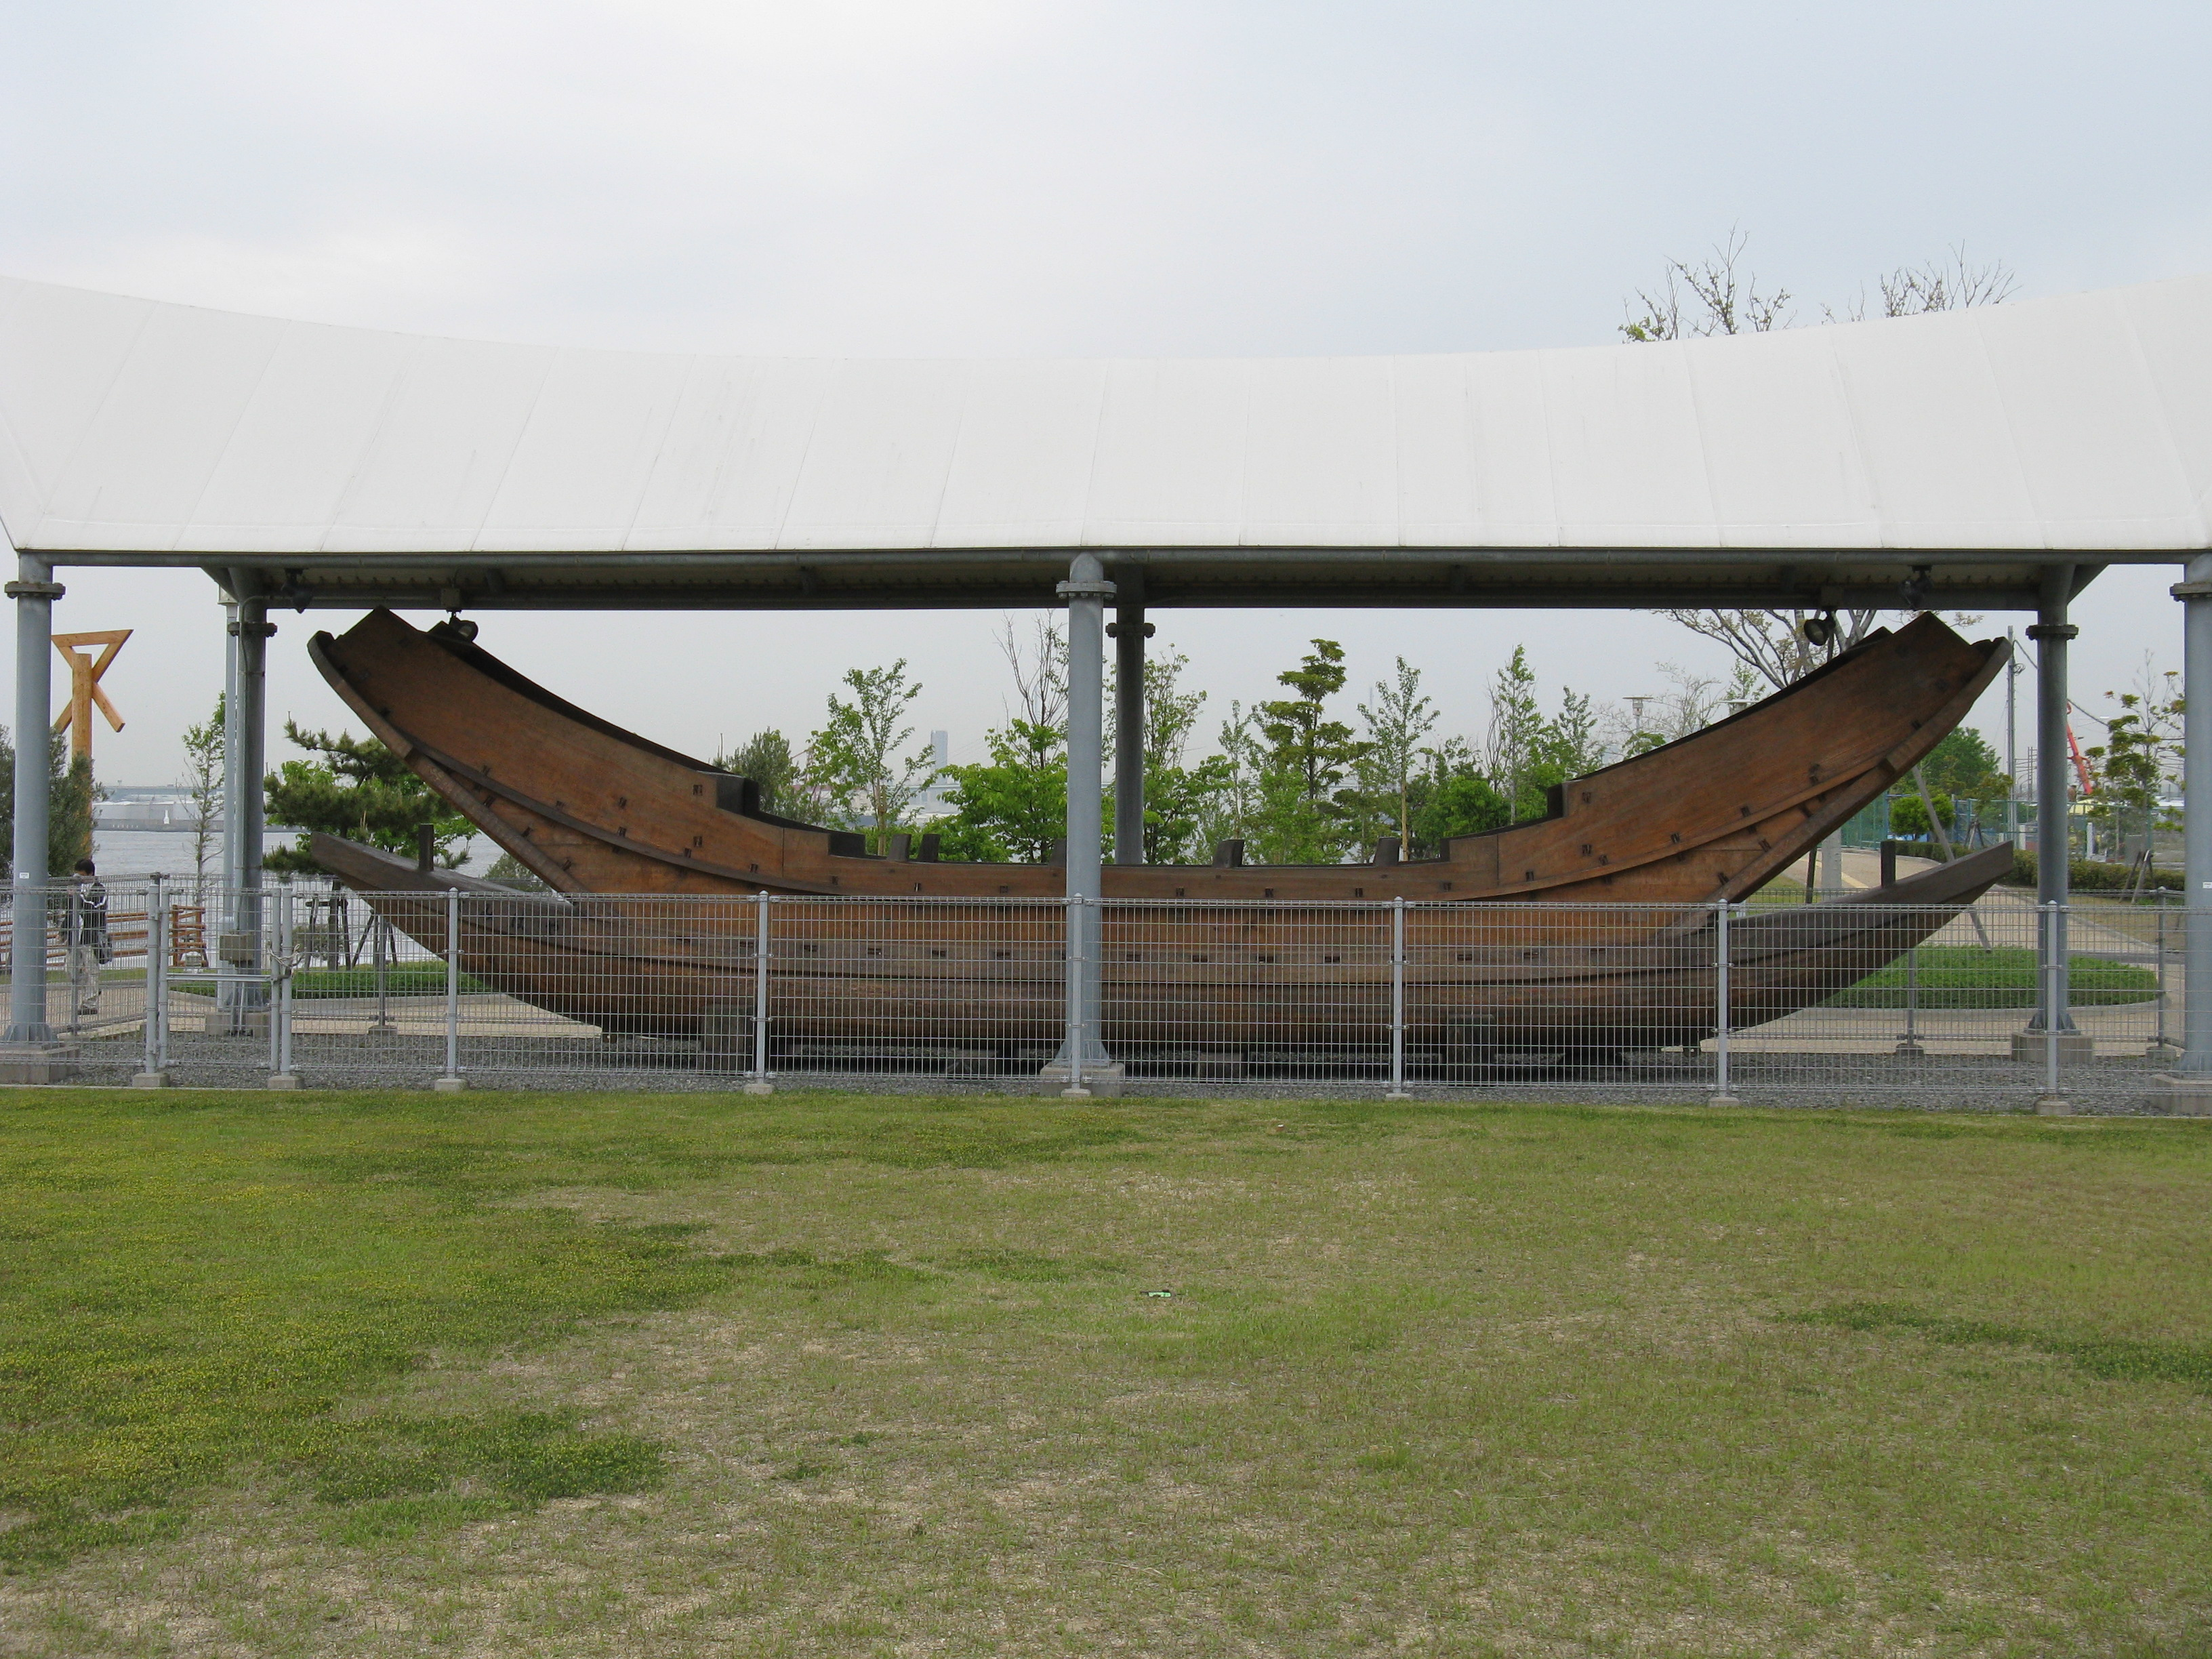 https://upload.wikimedia.org/wikipedia/commons/9/96/Osaka_Maritime_Museum_Namihaya.jpg